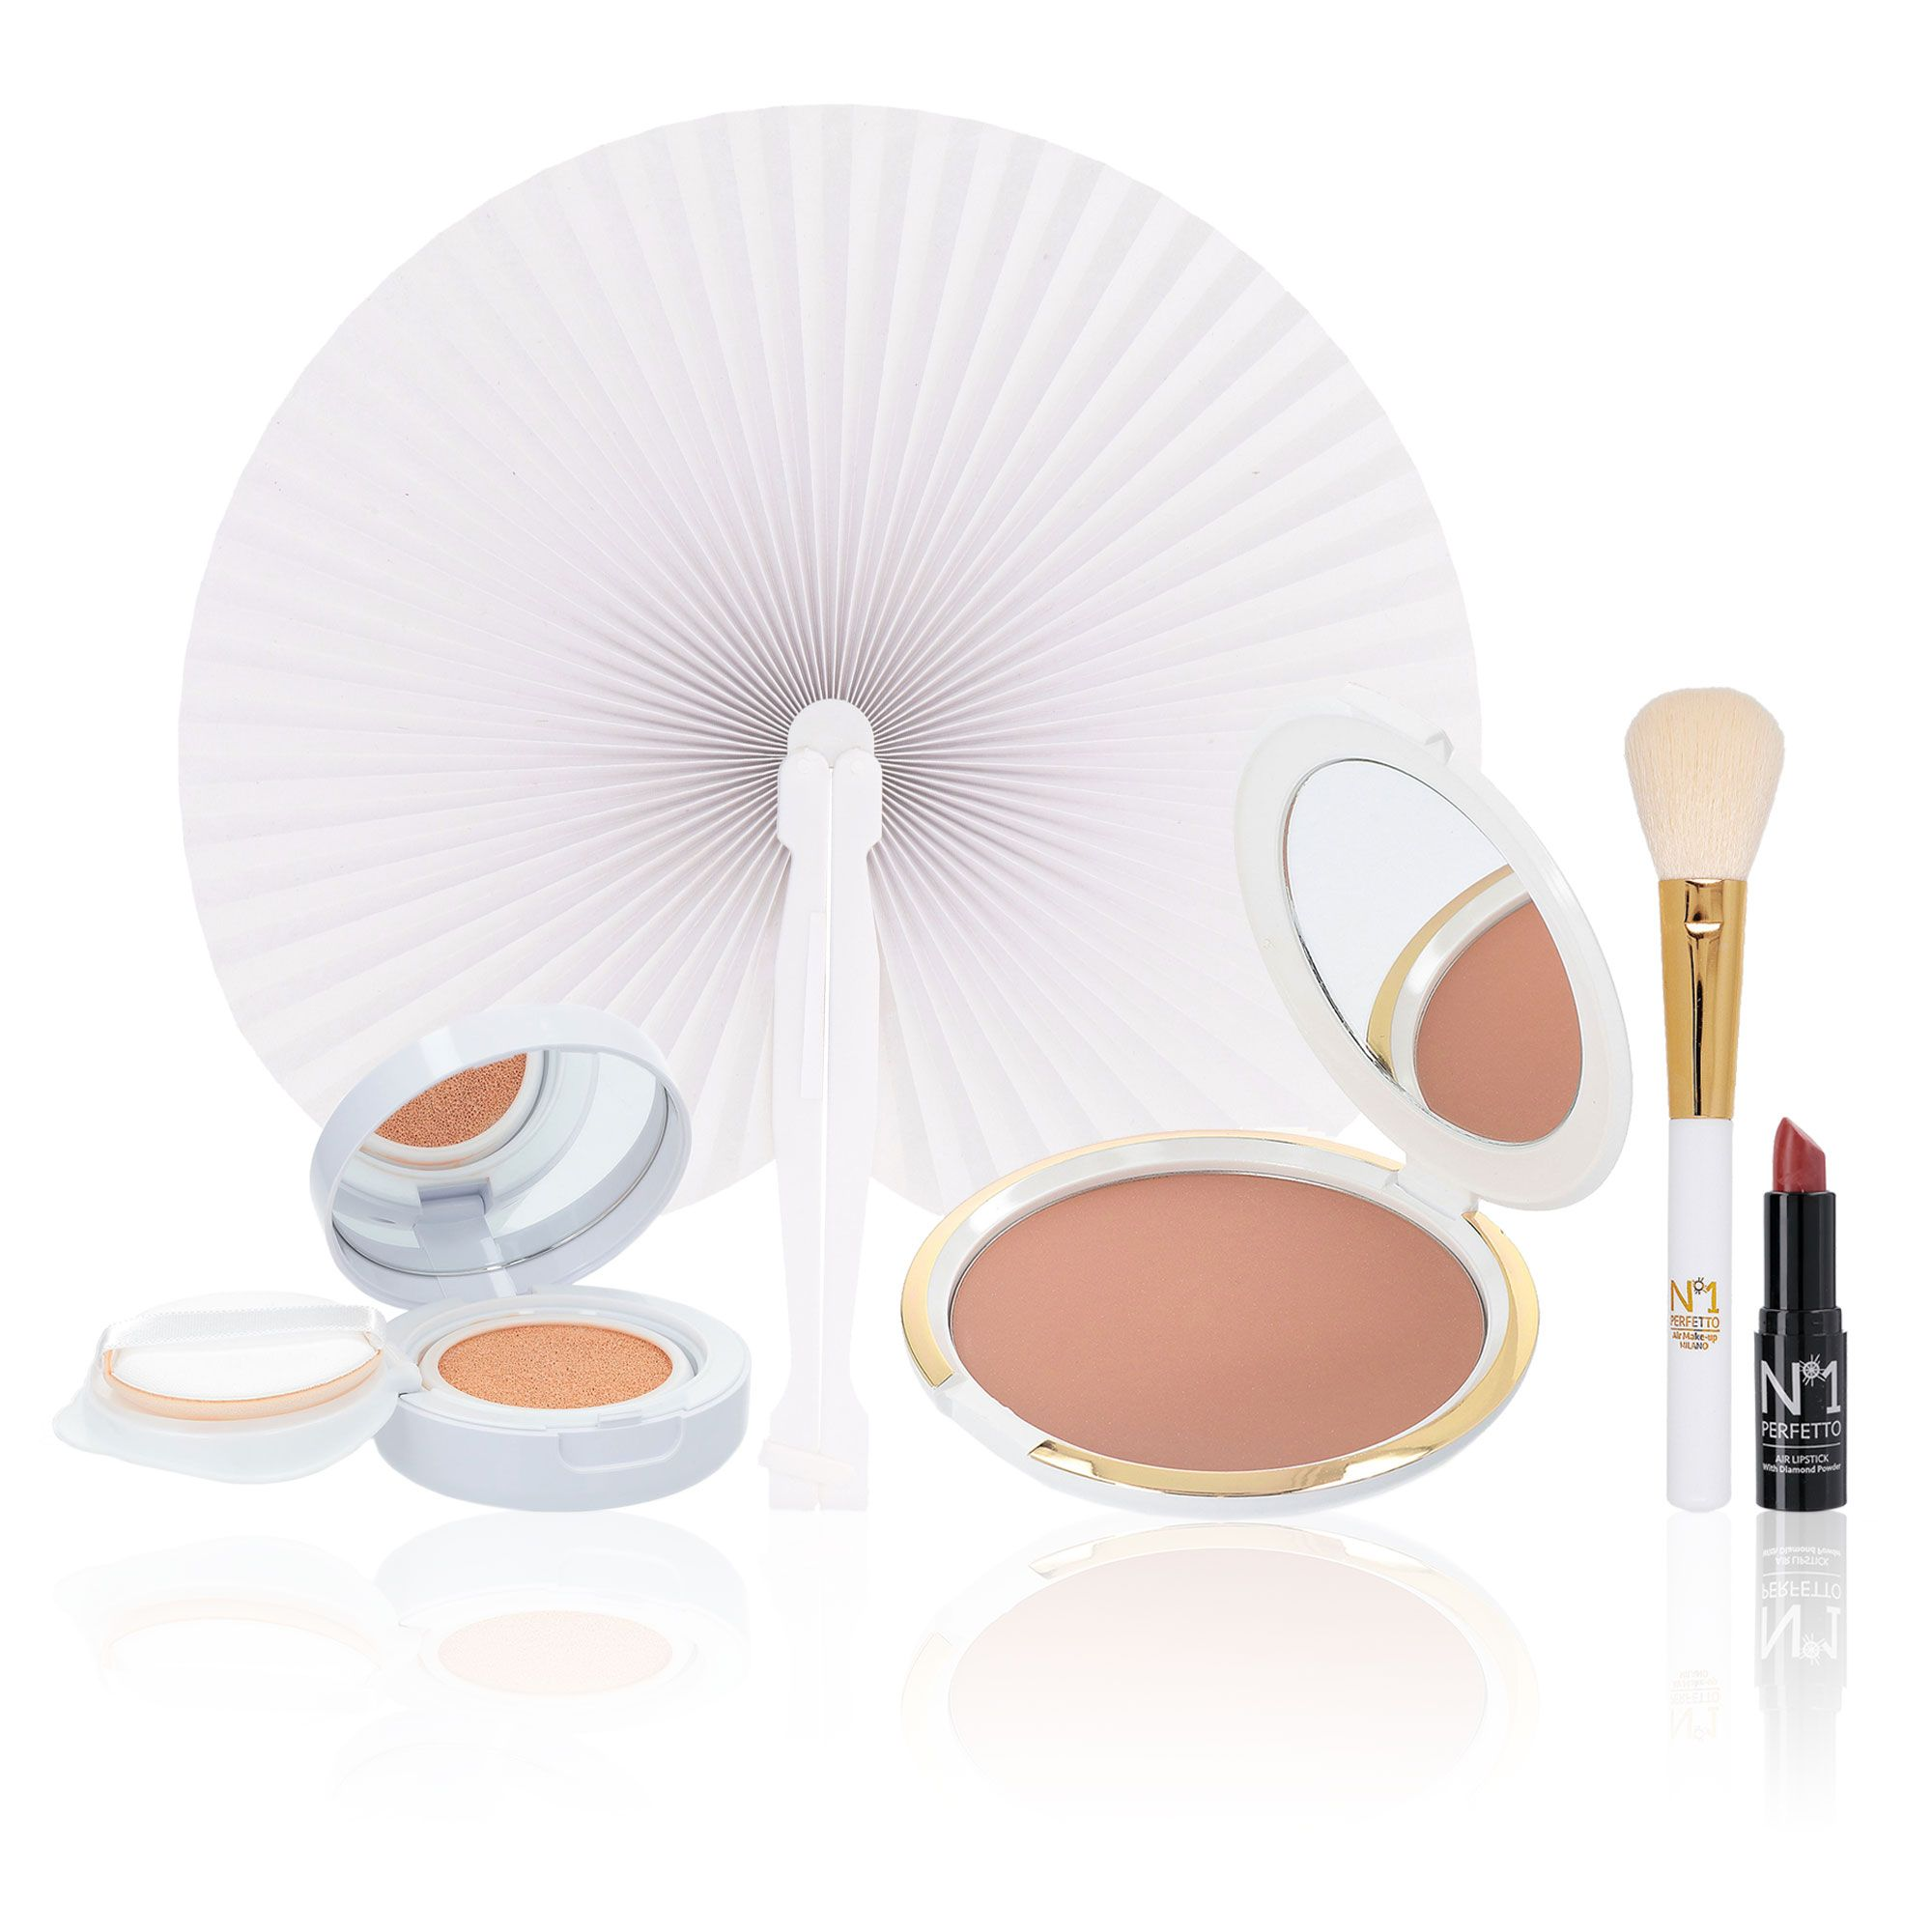 Make Perfetto Up Cushion4pz Kit N°1 Con Illuminante ID9YeW2HEb